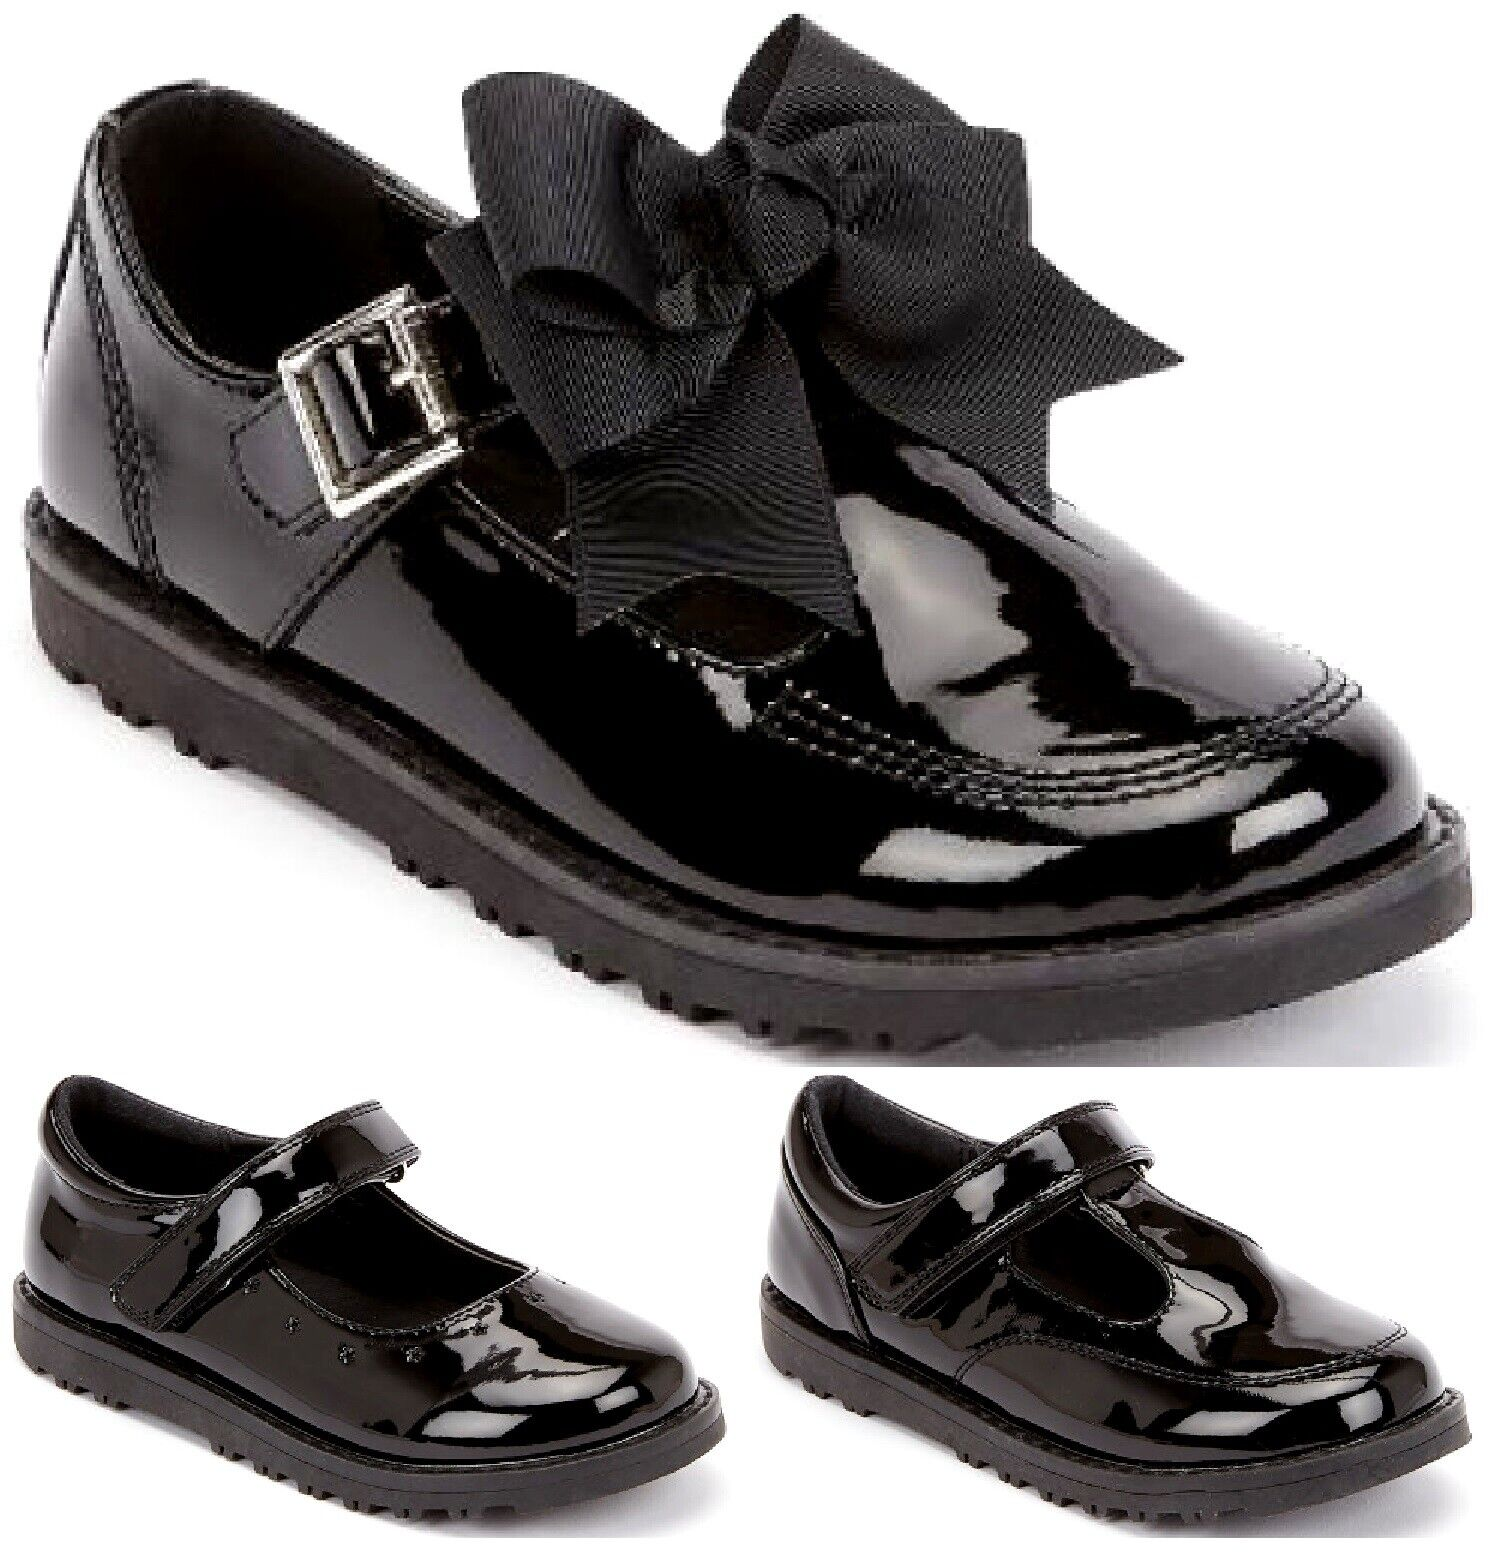 Kids Girls Flat T-Bar Party Wedding Shiny Patent Spanish School Shoes Size4.5-12